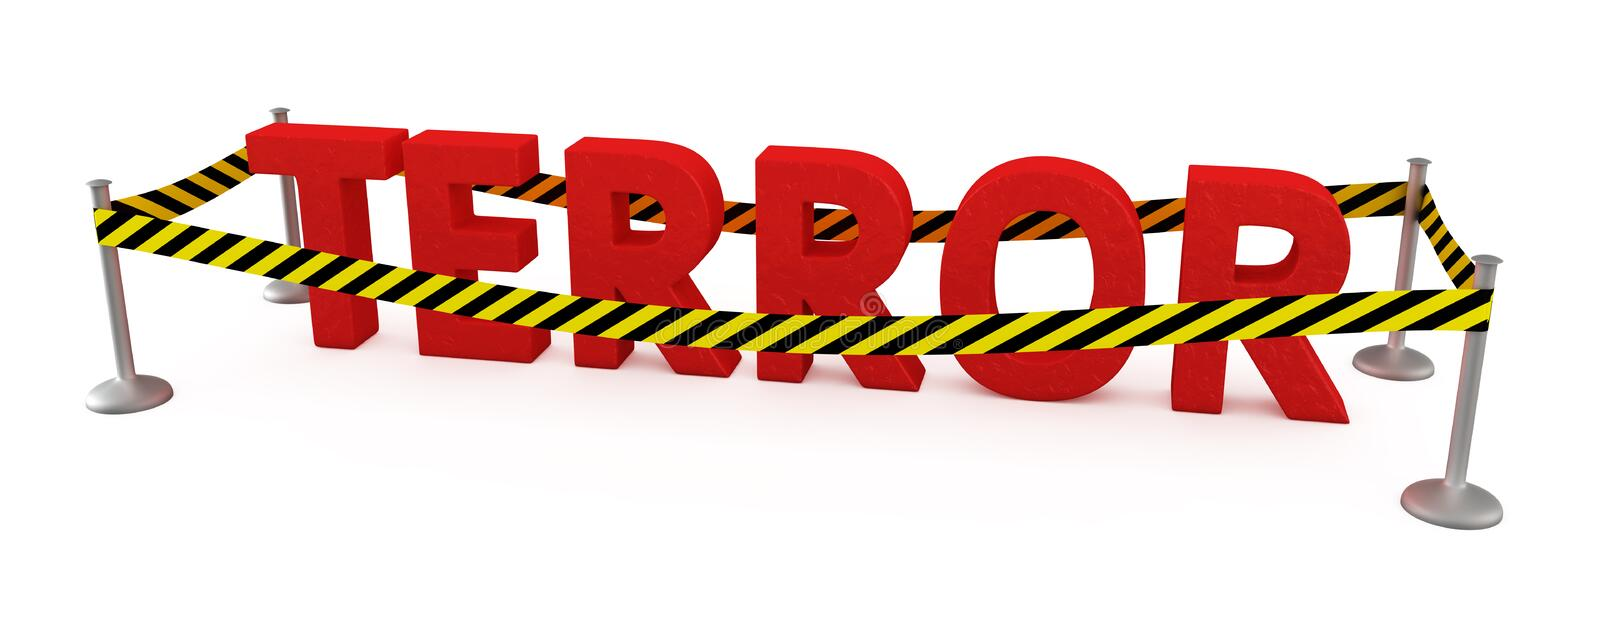 Terror area. Word Terror fenced by police tape royalty free illustration